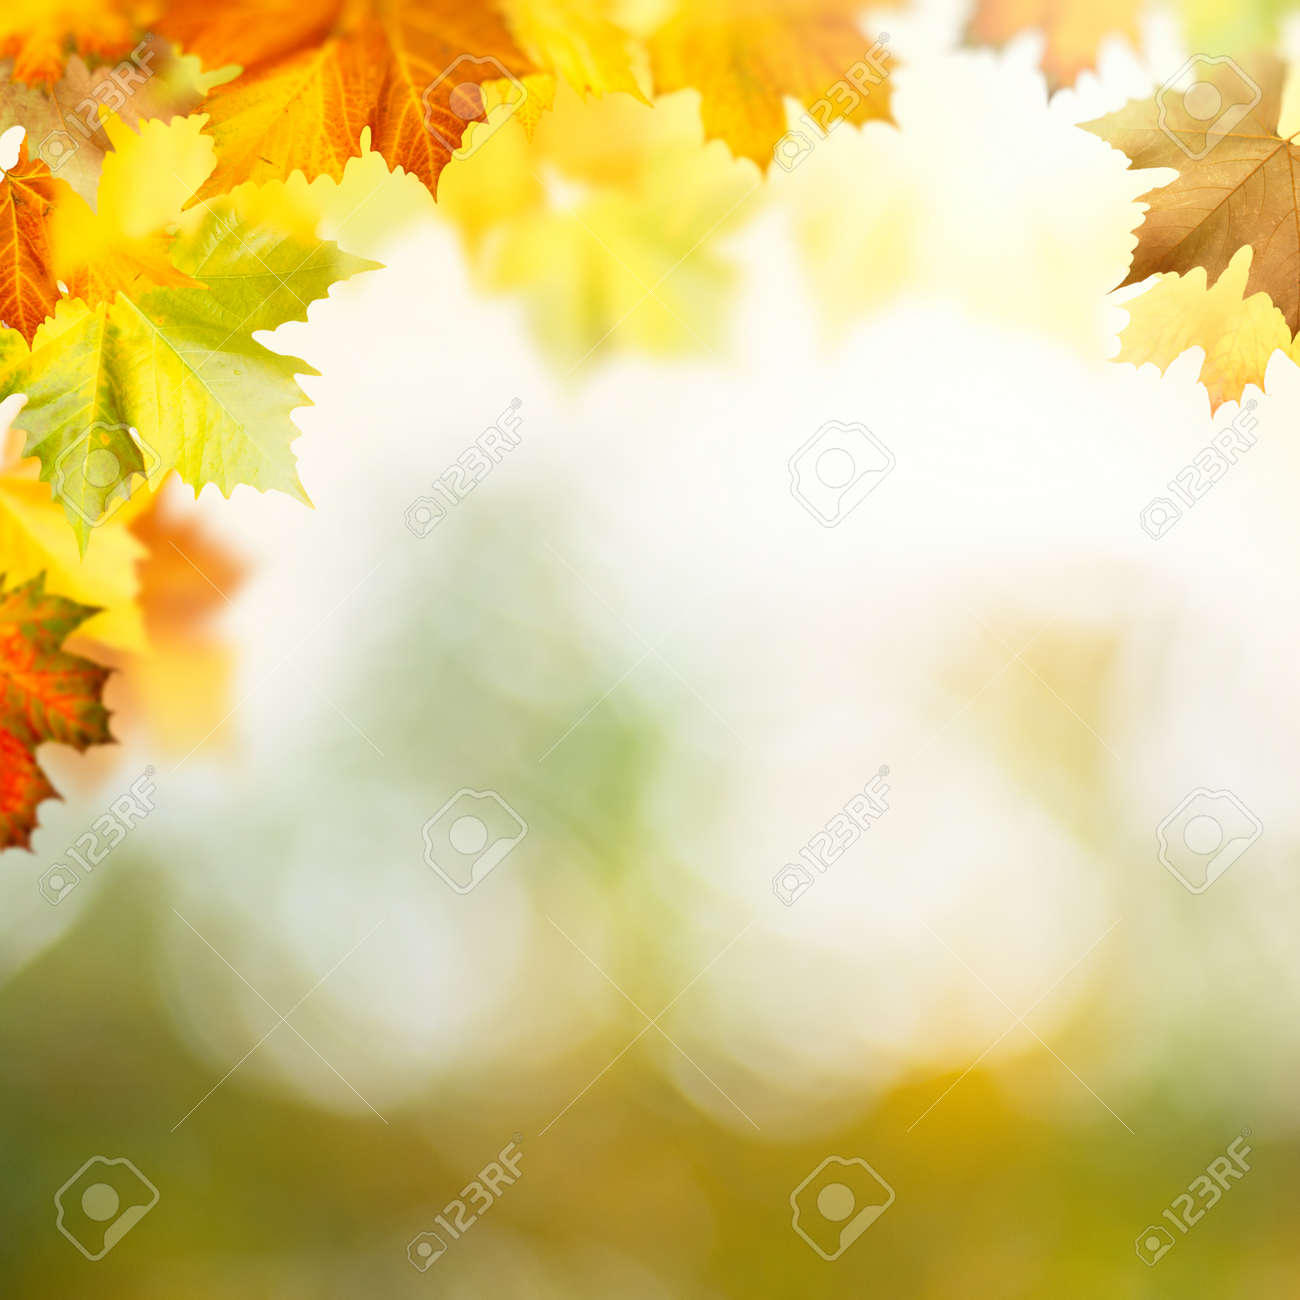 Wonderful autumn day in the forest. Abstract natural backgrounds - 159256720